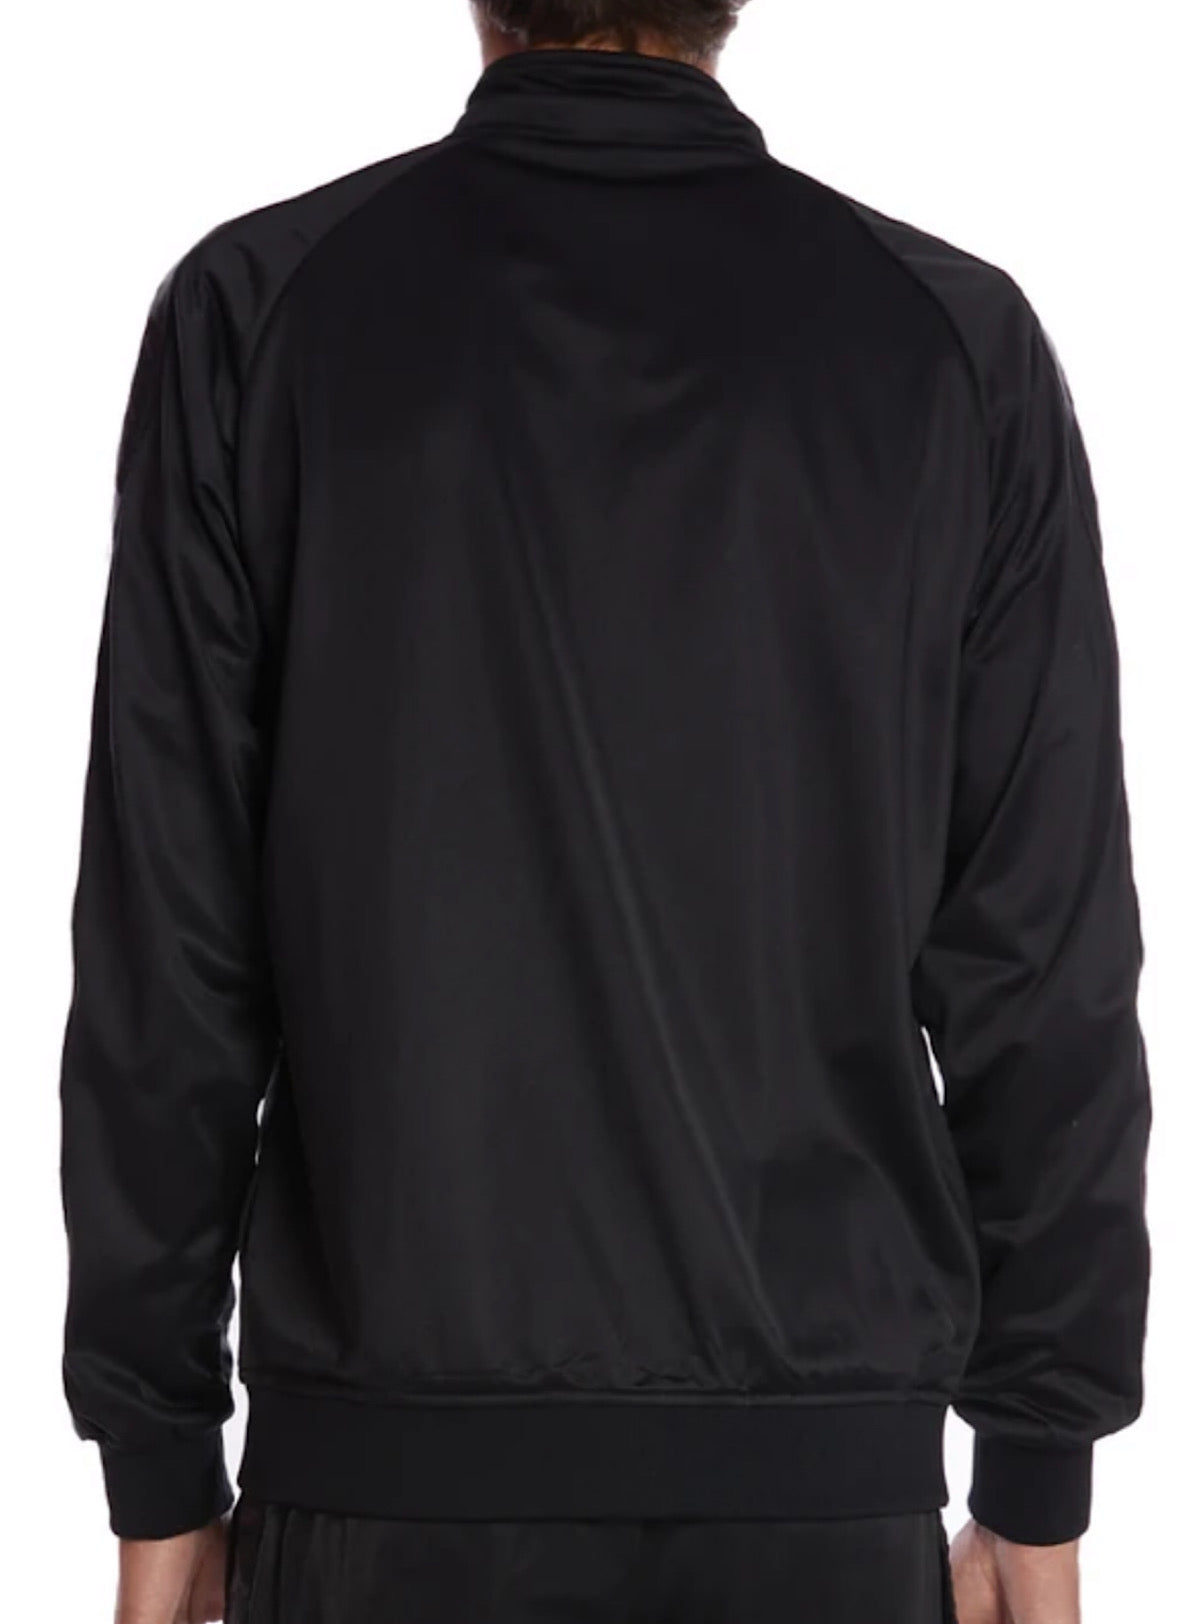 Kappa Track Jacket - Banda Anniston - Black - A1H